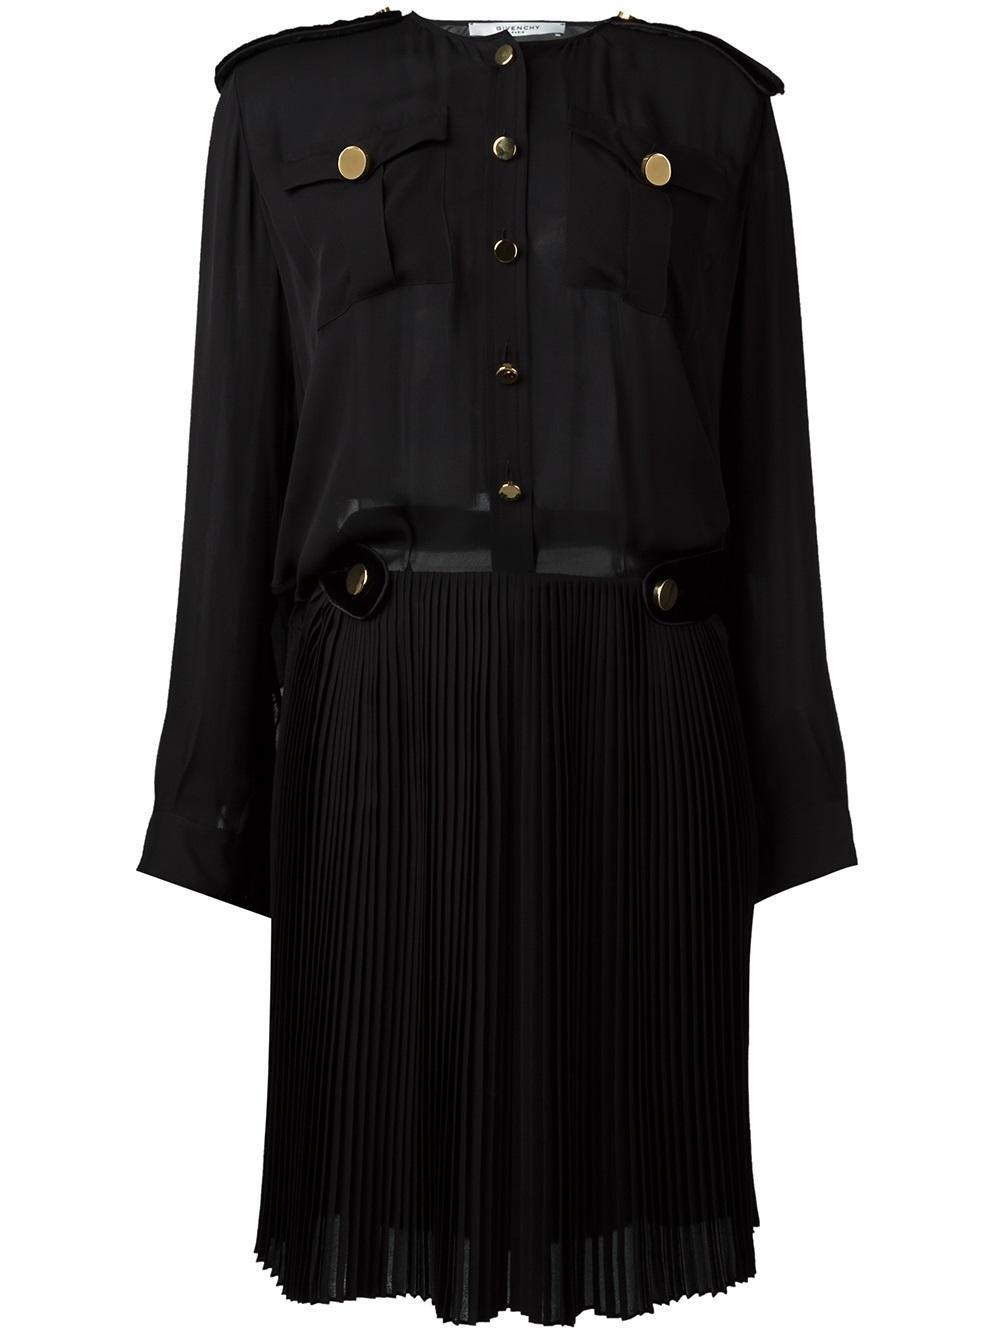 Lyst givenchy pleated skirt shirt dress in black for Black pleated dress shirt